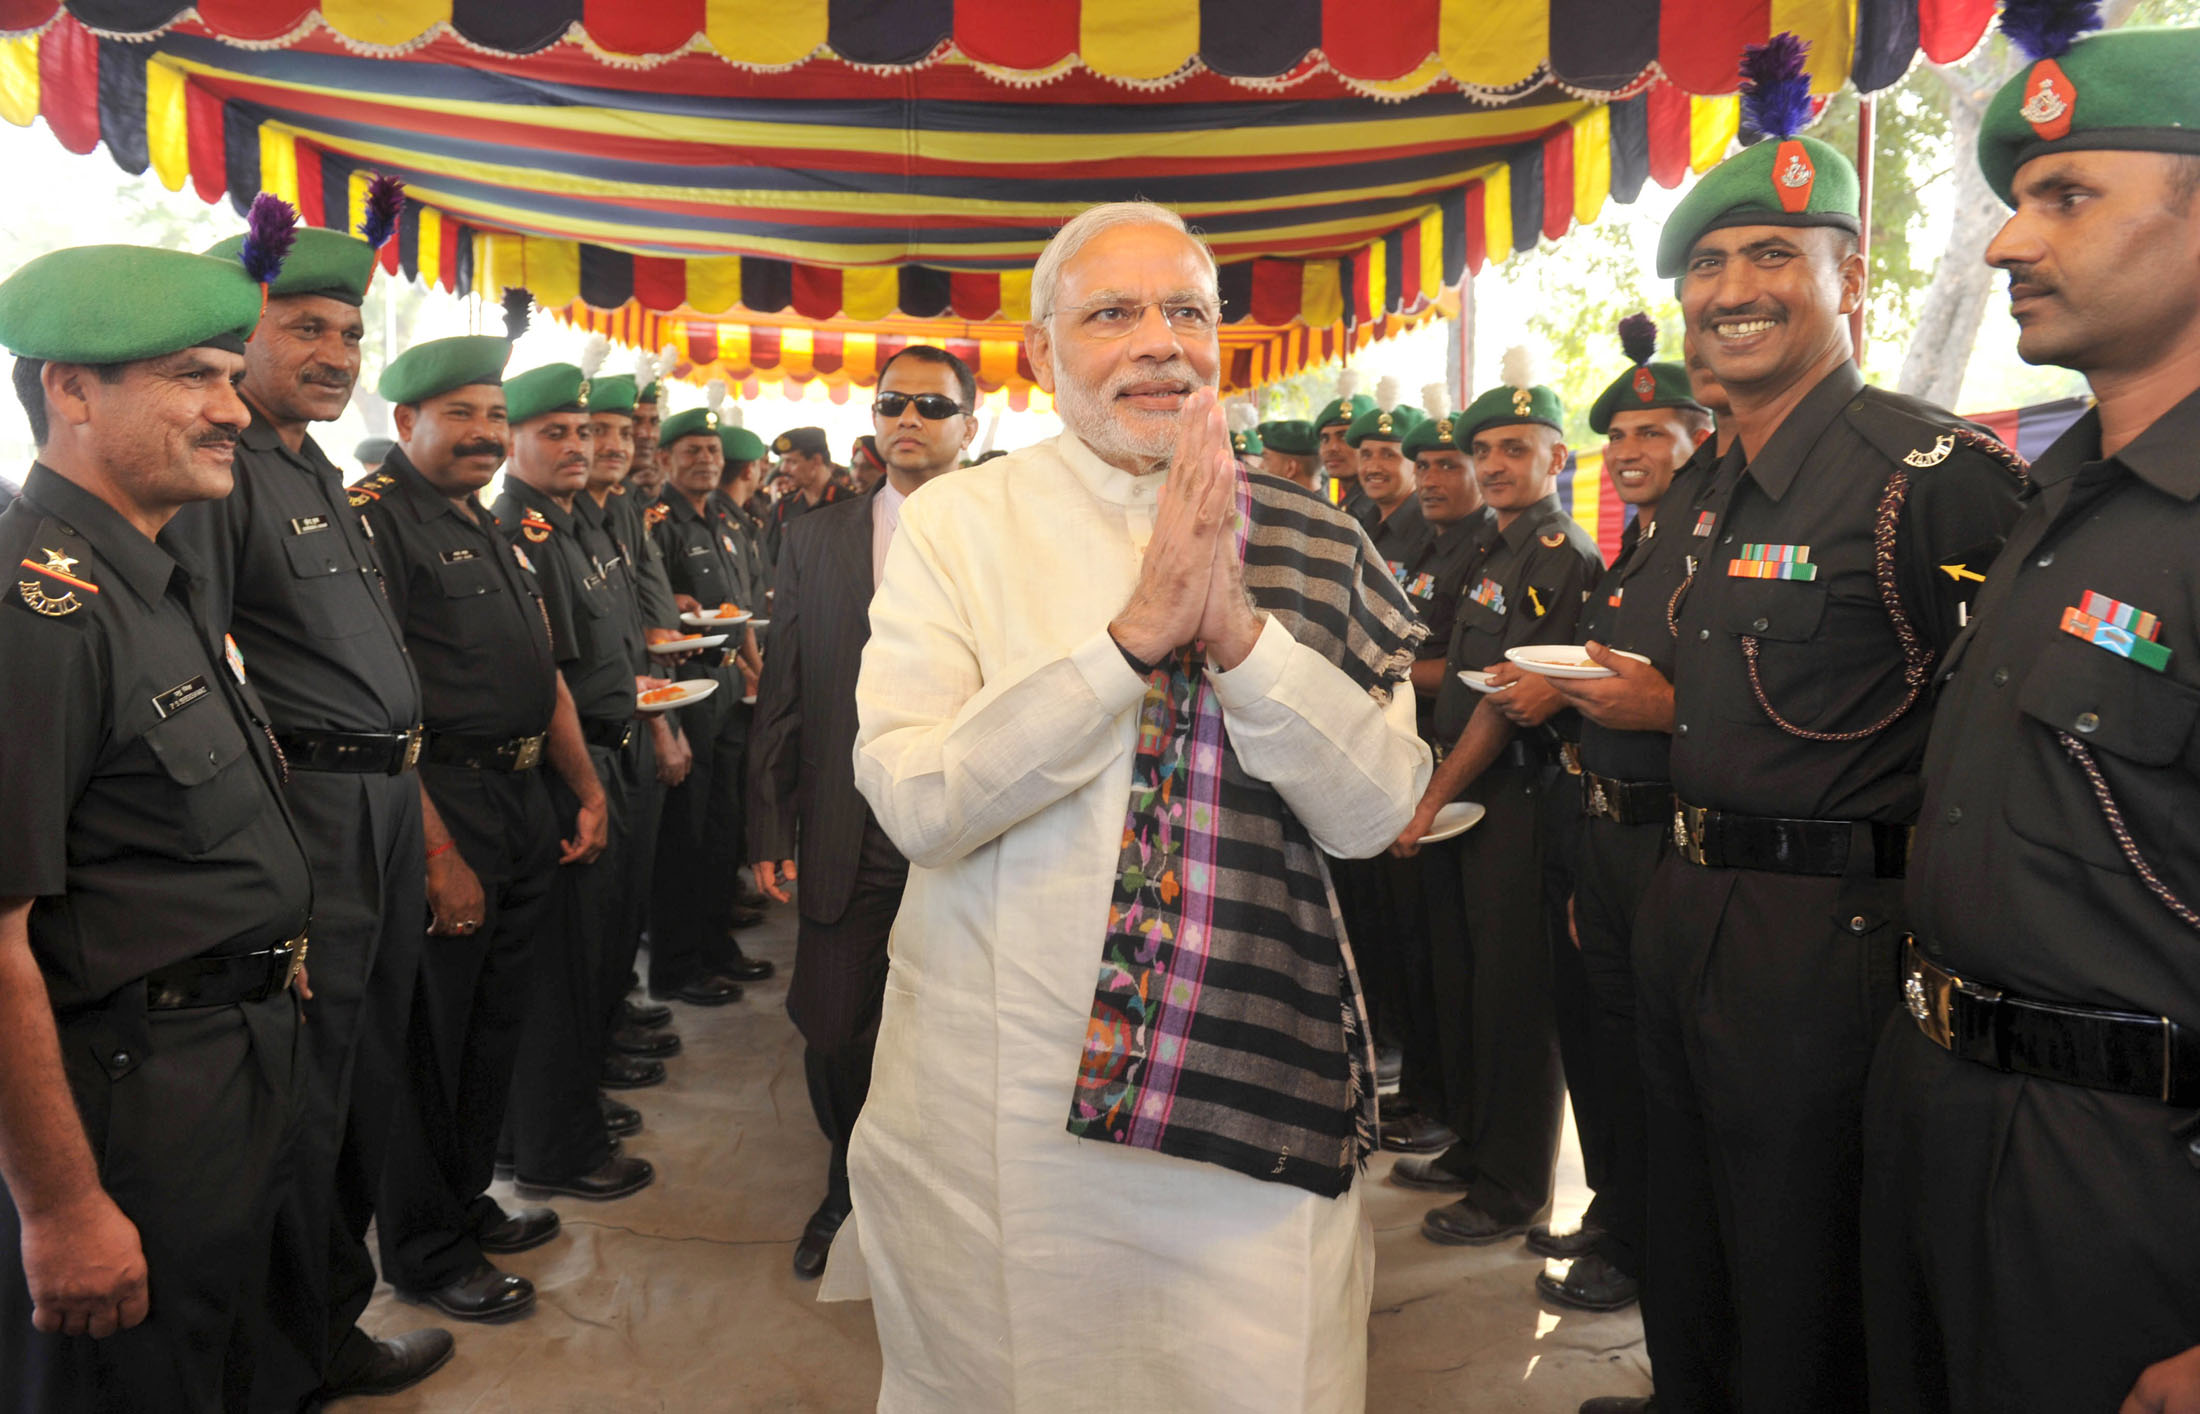 The Prime Minister, Shri Narendra Modi interacting with the jawans at Barki War Memorial, in Punjab on November 11, 2015.